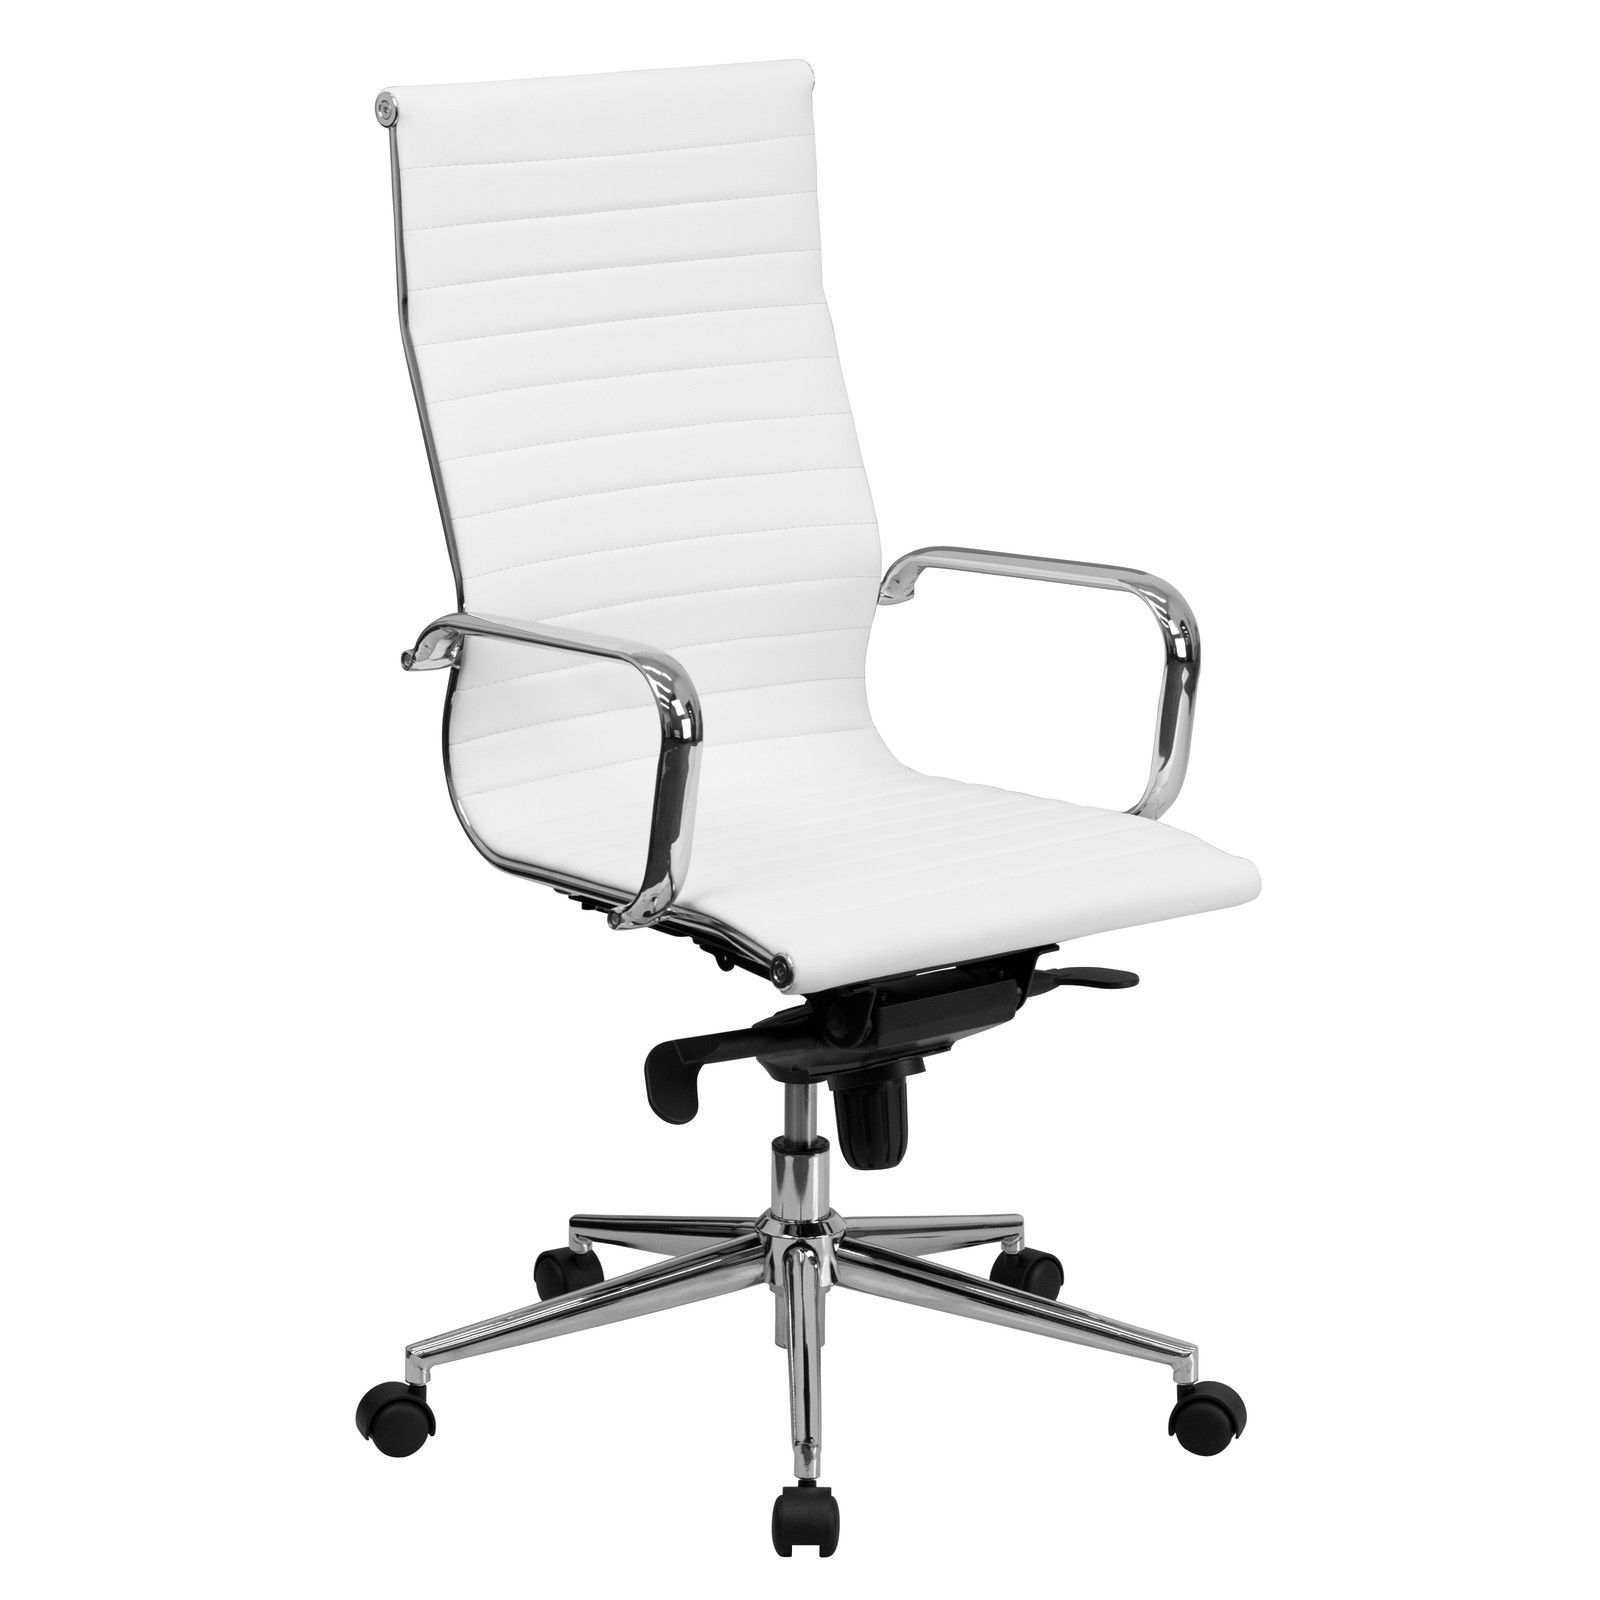 Back white ribbed upholstered leather executive office chair chairs